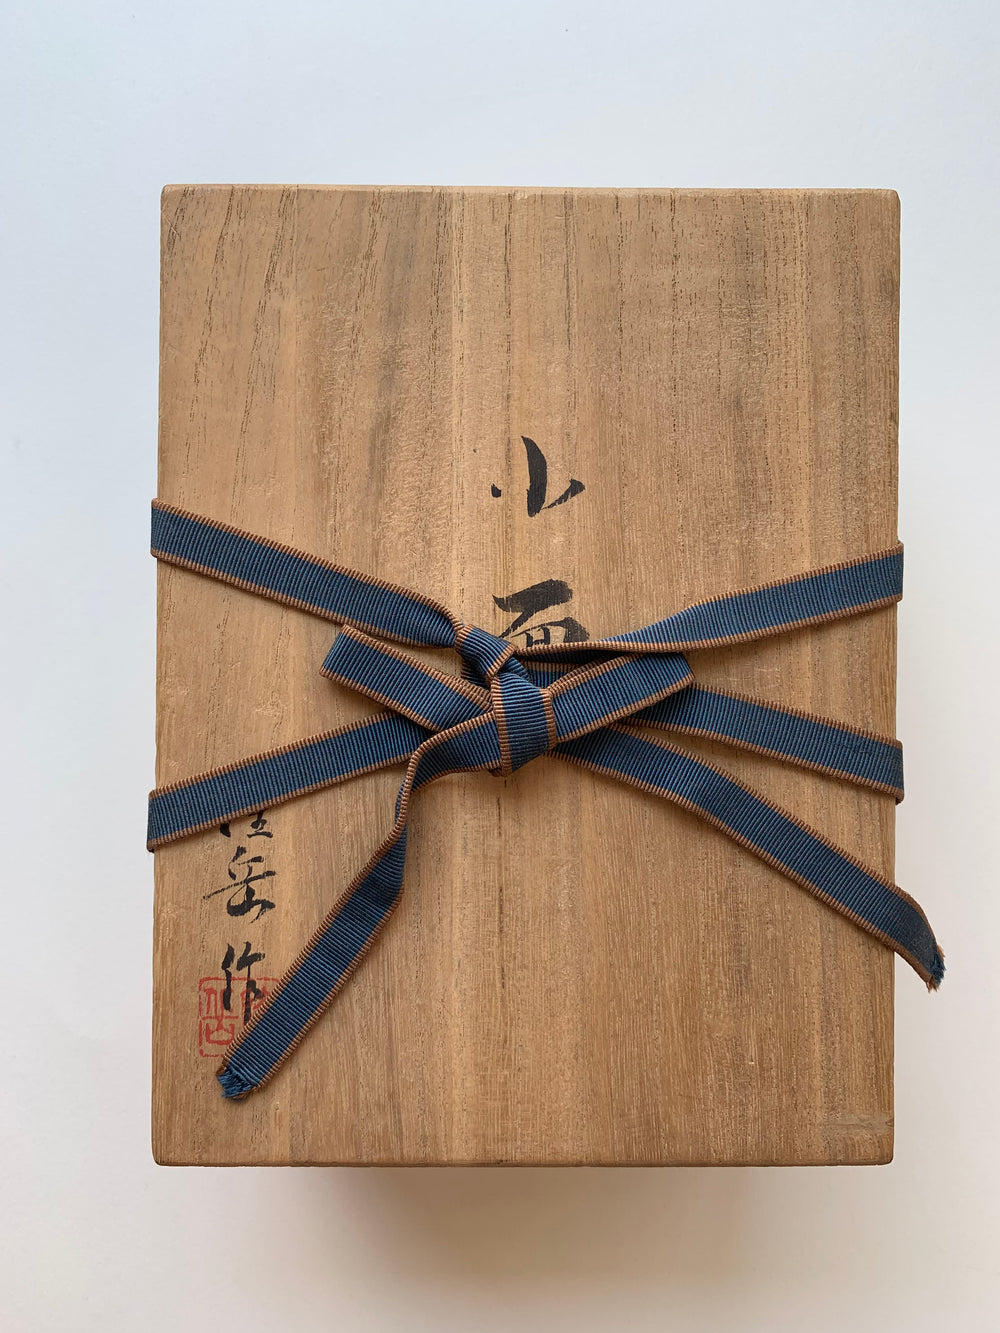 Ko Omote by Ryūgaku  / NOH MASK with Textile Bag and Paulownia box.